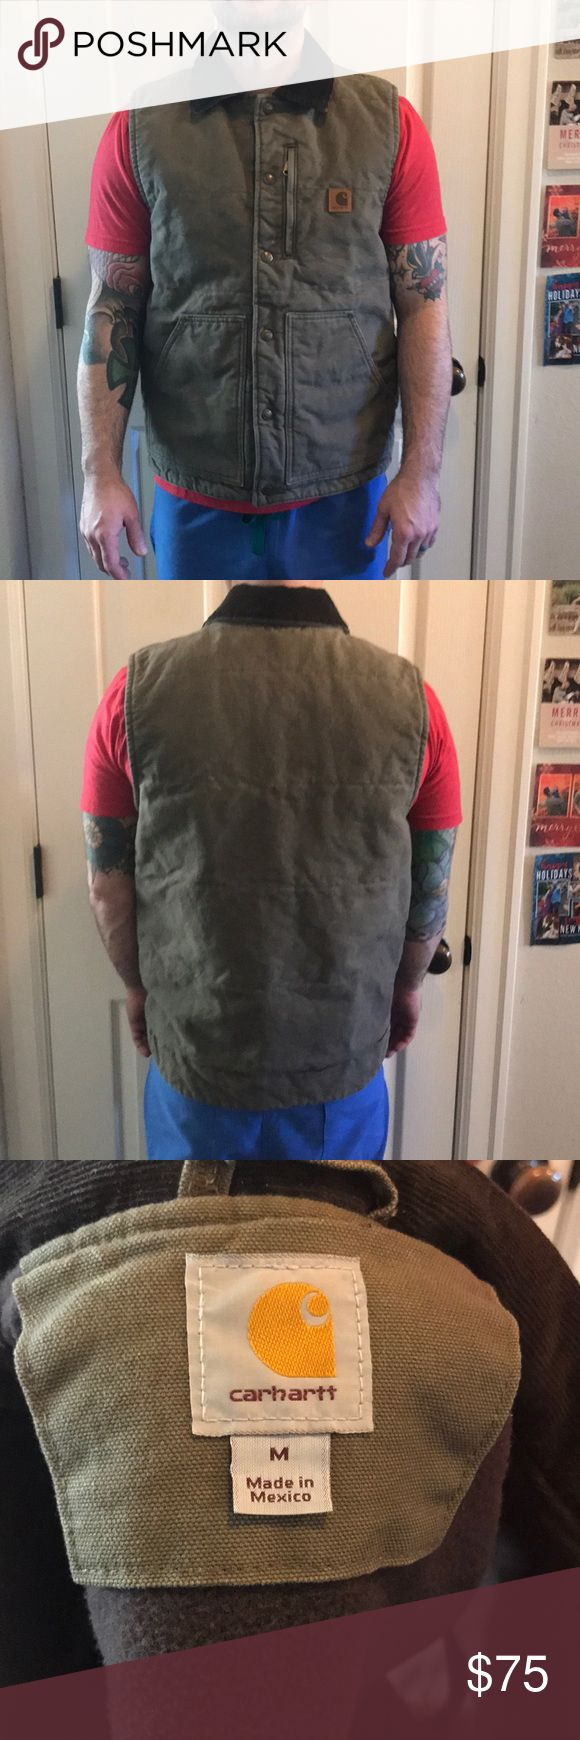 Carhartt Vest💥💥New Years Sale💥💥 Bought and never worn. In excellent condition. Snap closure and zippered pocket in front Carhartt Jackets & Coats Vests